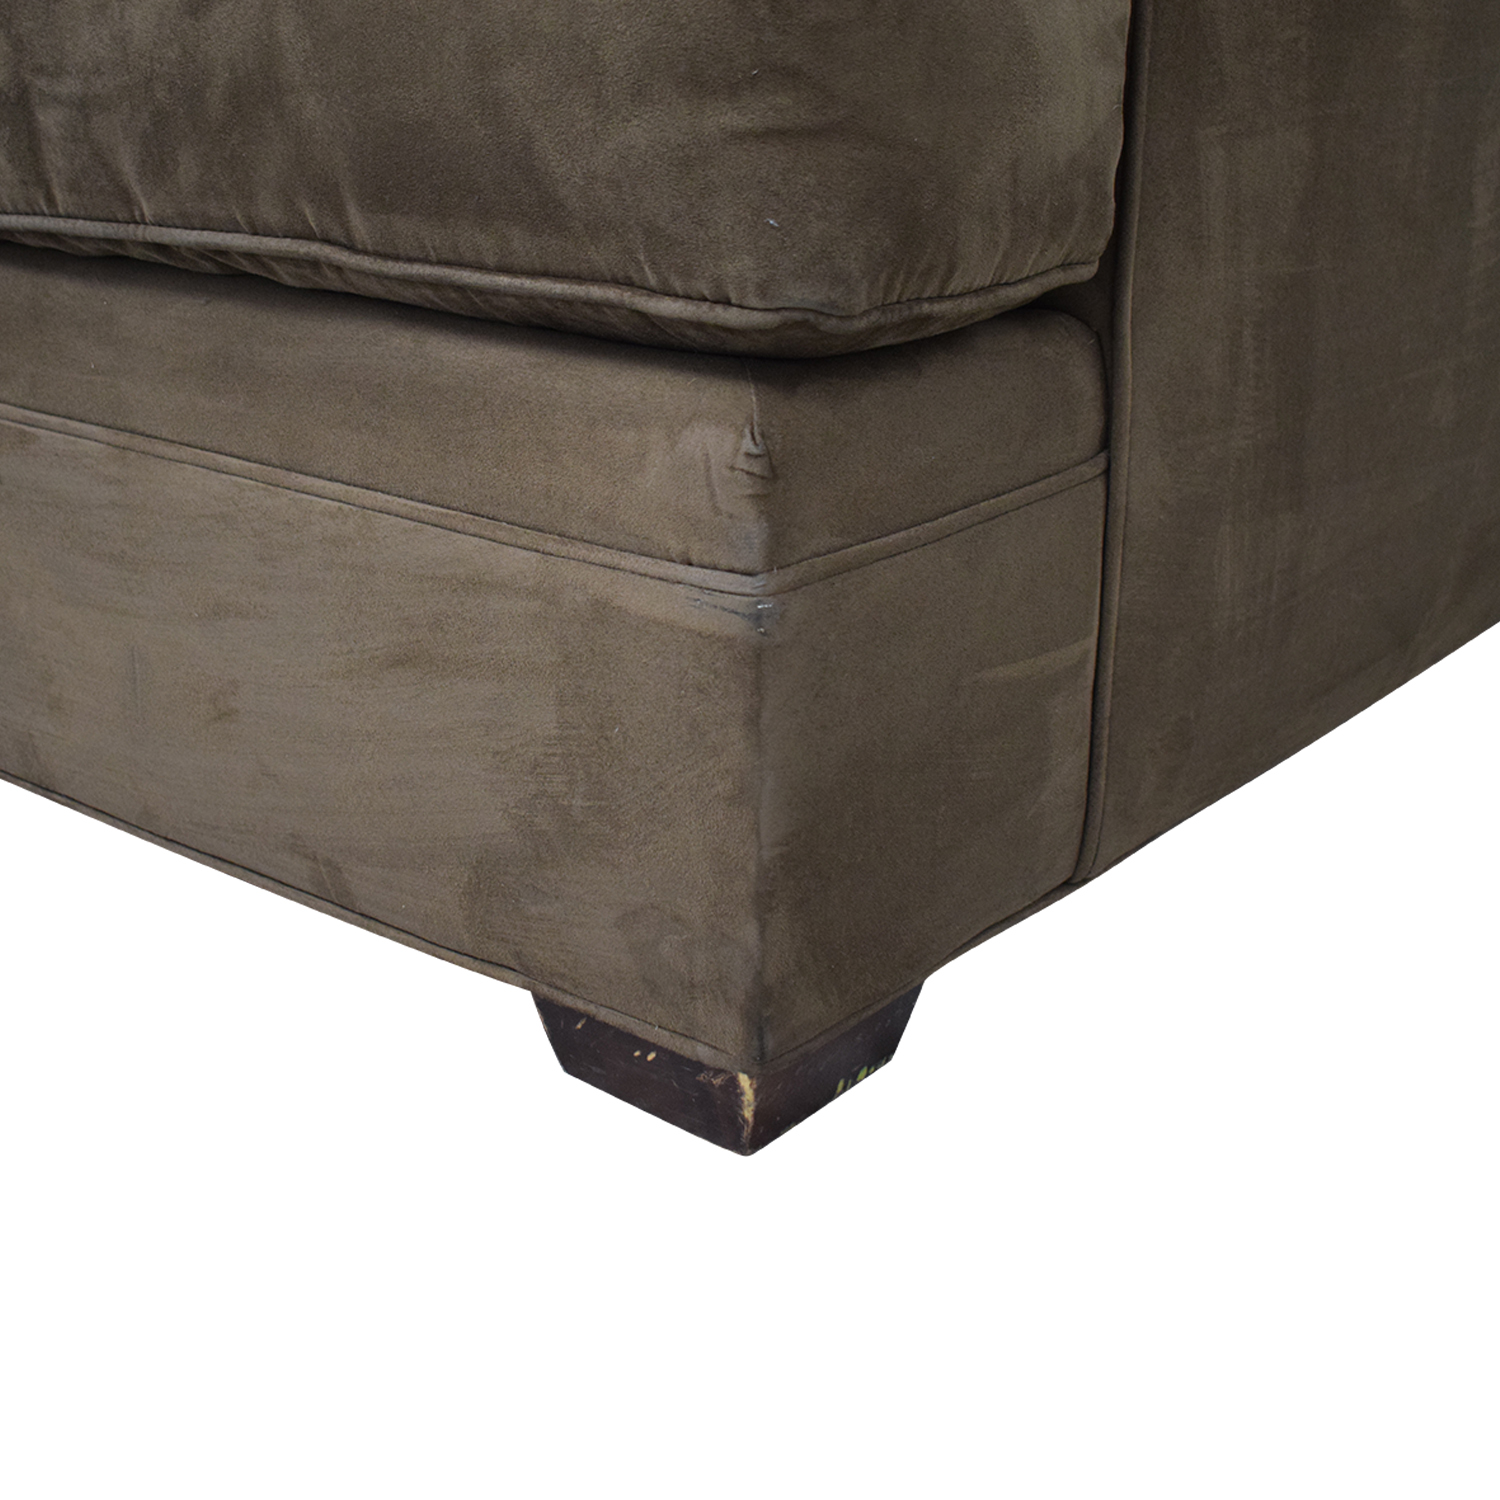 Crate & Barrel Crate & Barrel Brown Suede Loveseat used